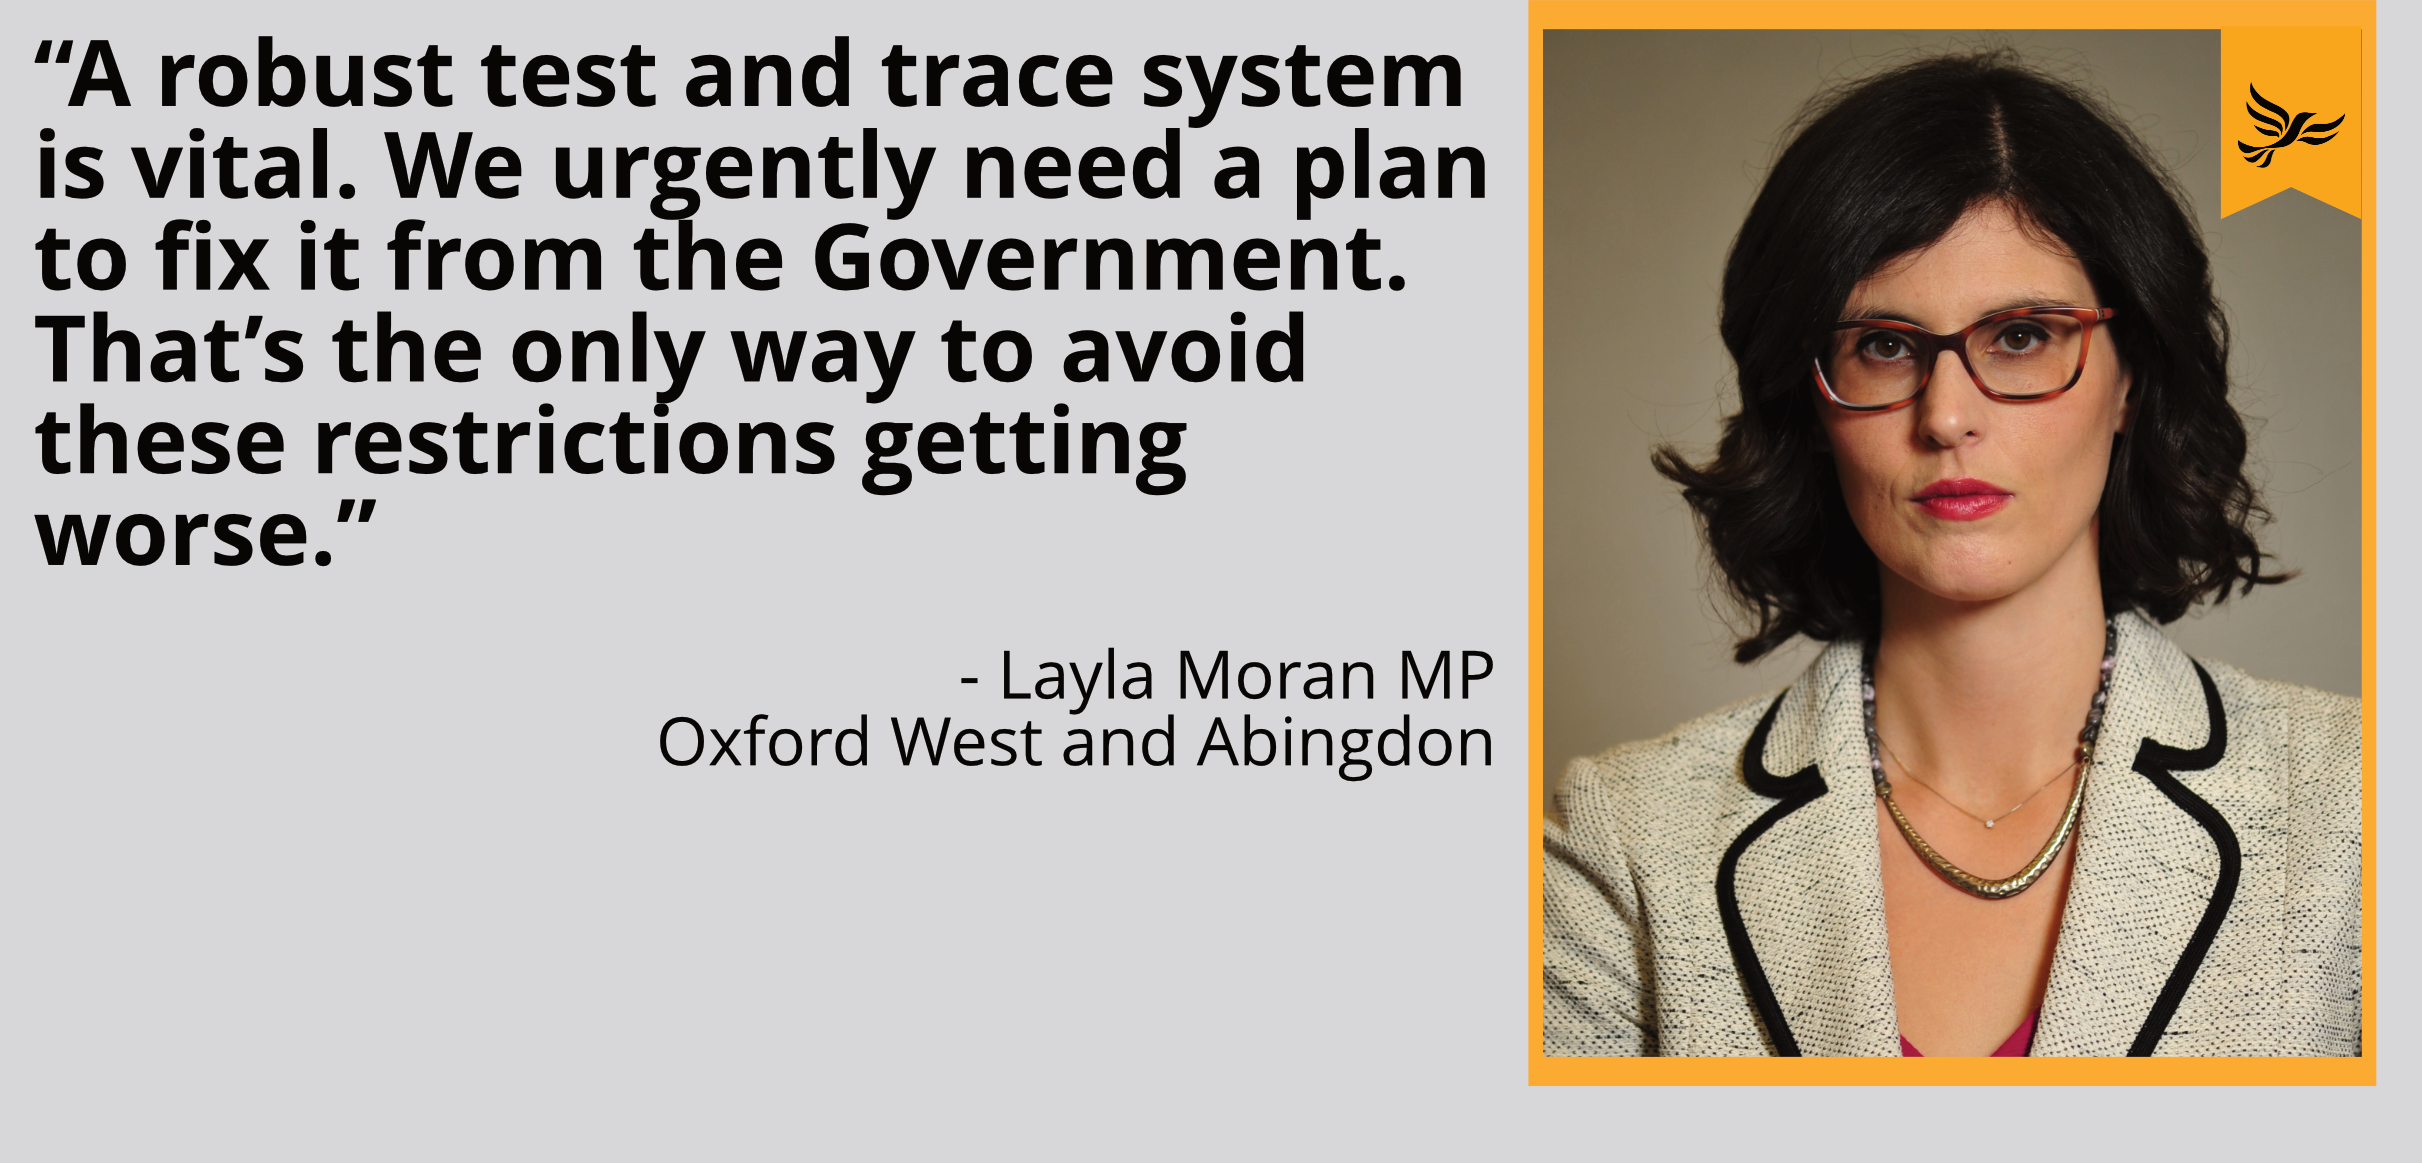 """A robust test and trace system is vital. We urgently need a plan to fix it from the Government. That's the only way to avoid these restrictions getting worse."""